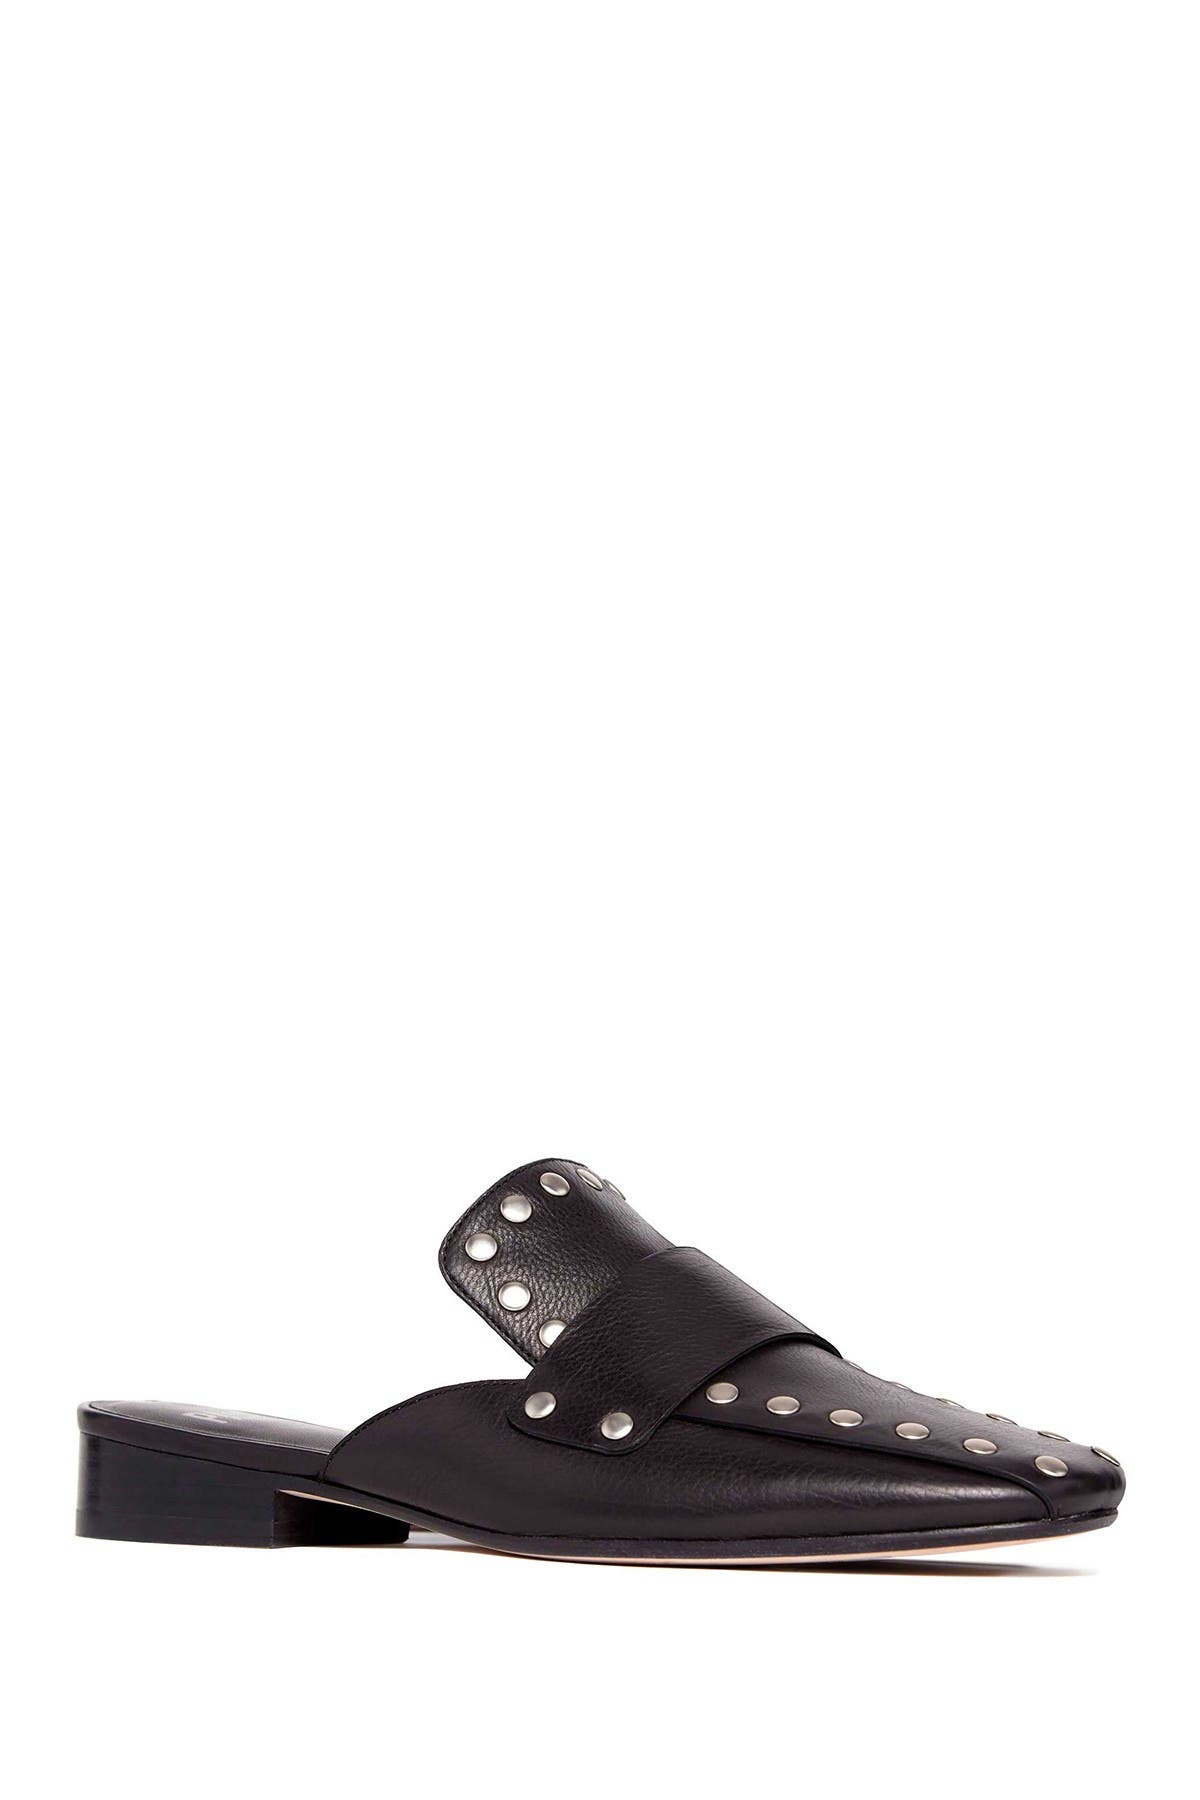 Image of PAIGE Georgie Studded Loafer Mule